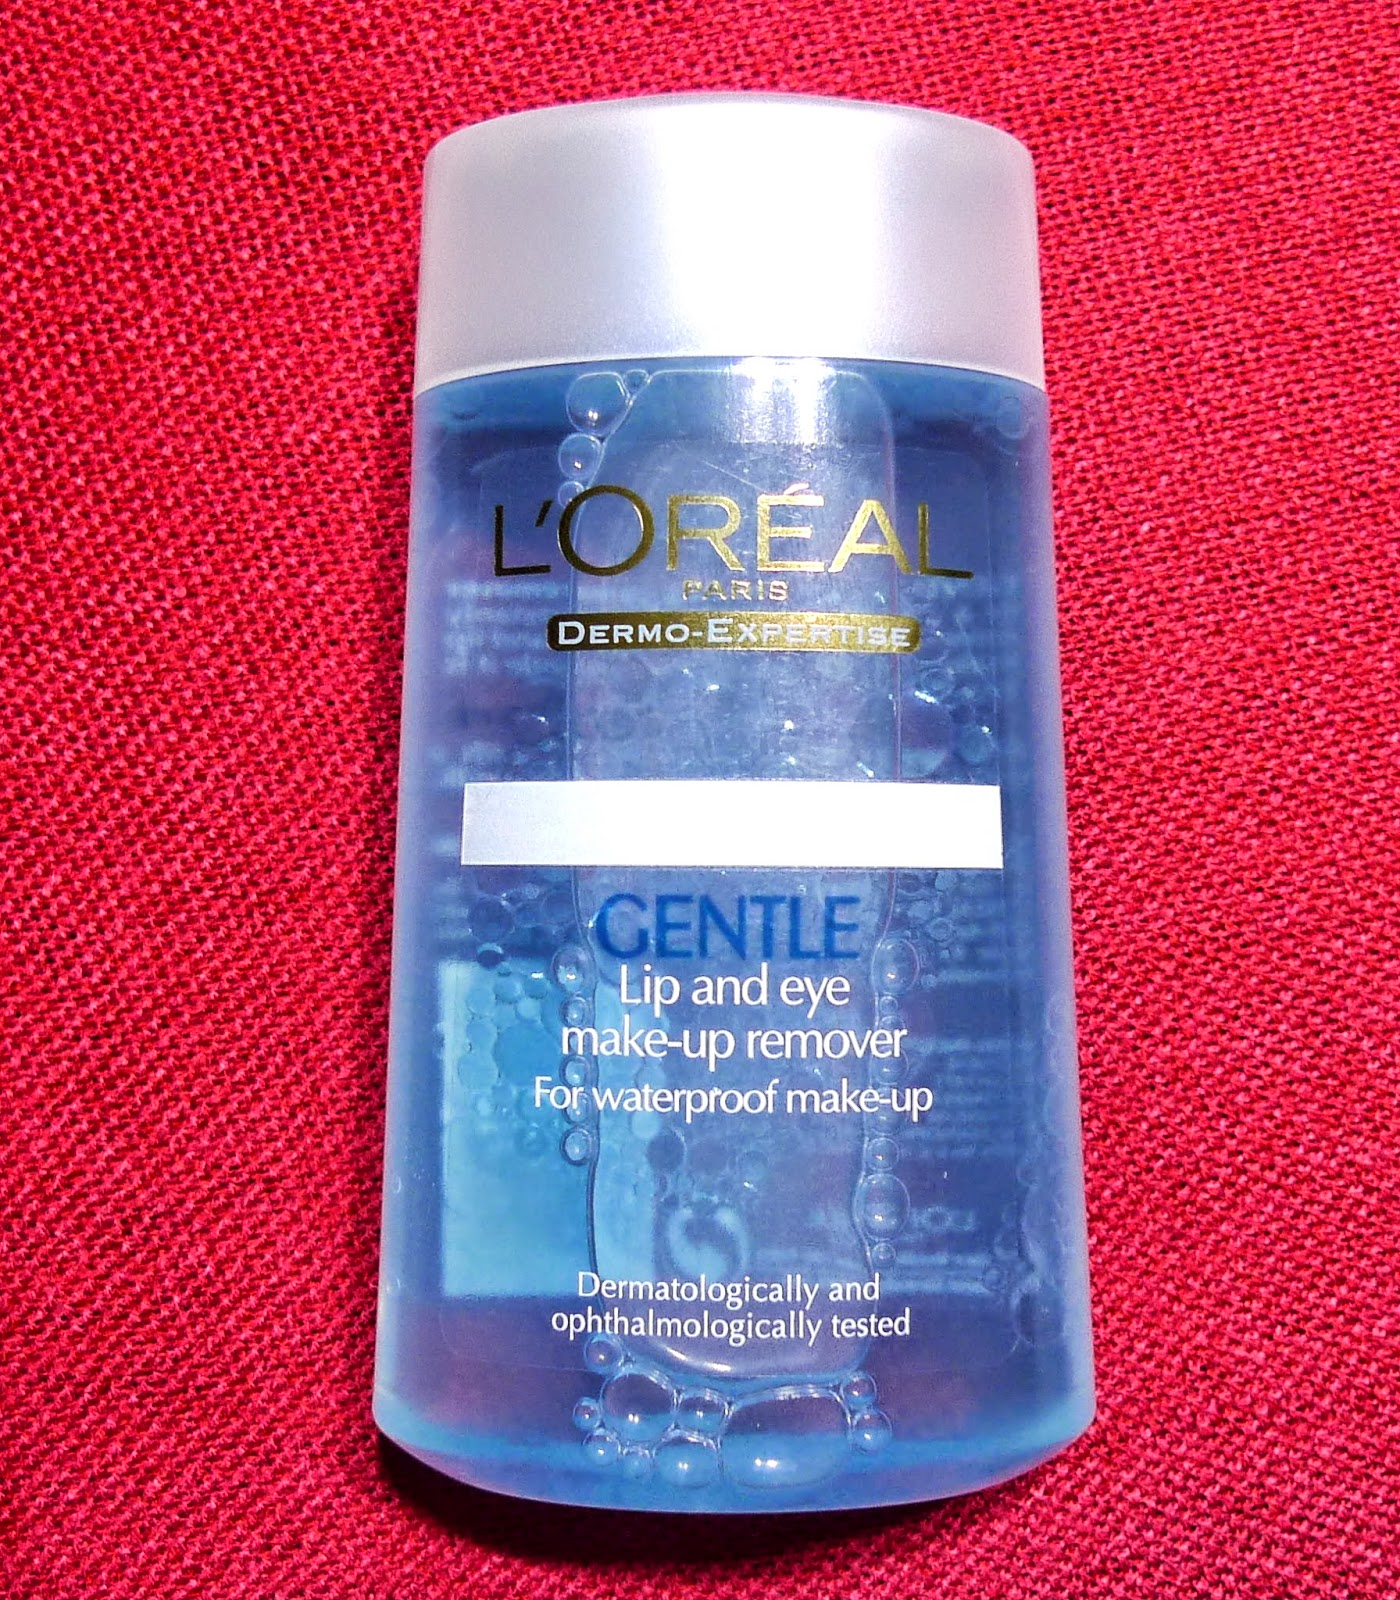 Loreal Gentle Lip And Eye Makeup Remover Review The Beauty Junkee